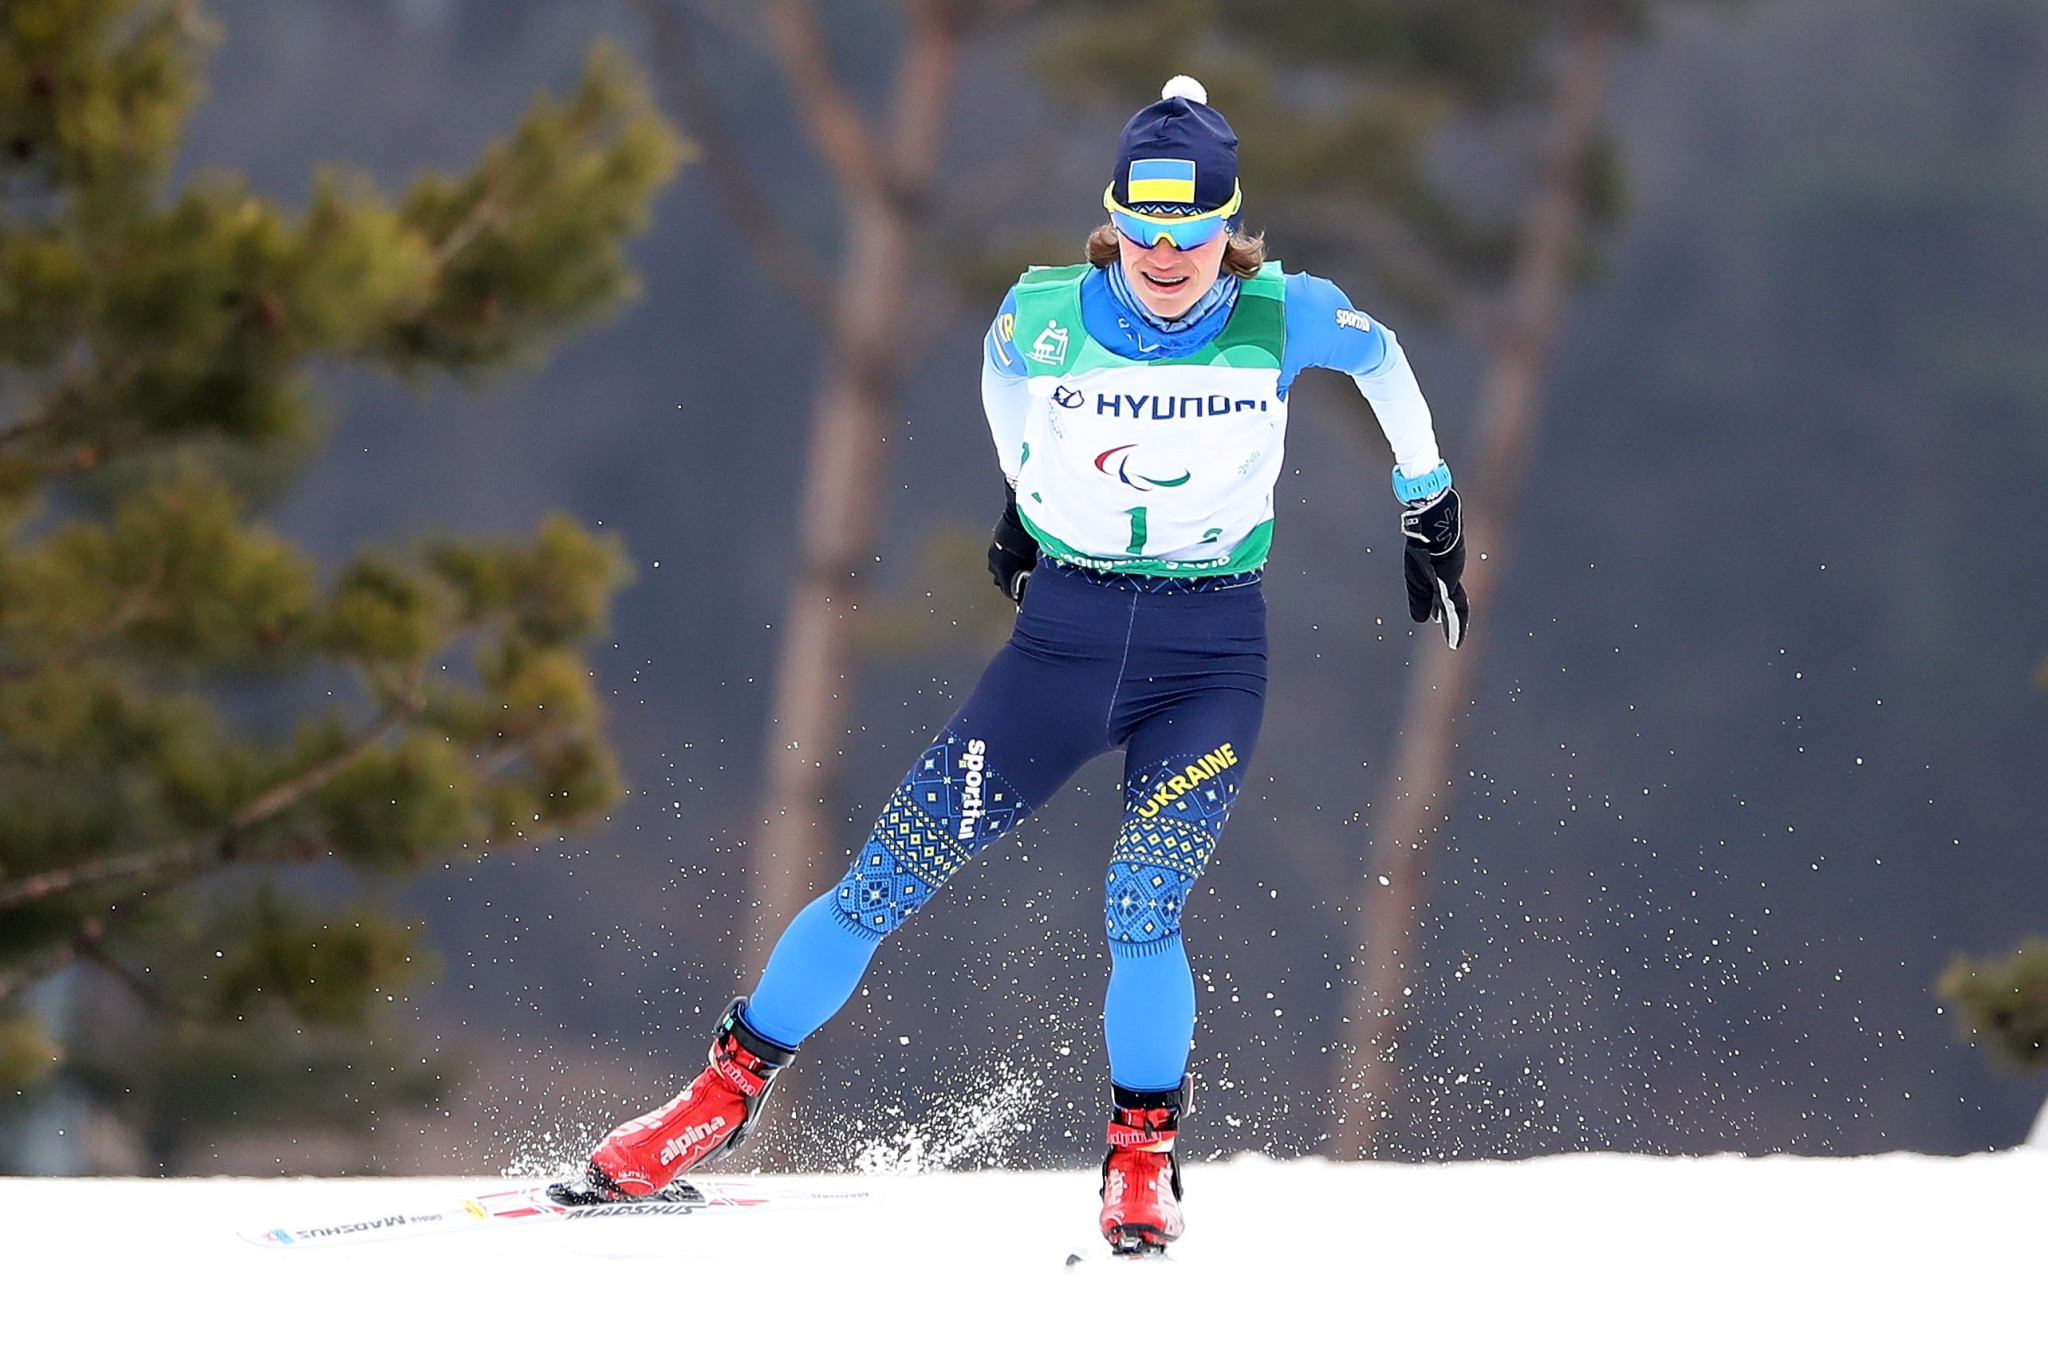 World champions Ukraine and France claim Paralympic relay golds as cross-country skiing action concludes at Pyeongchang 2018